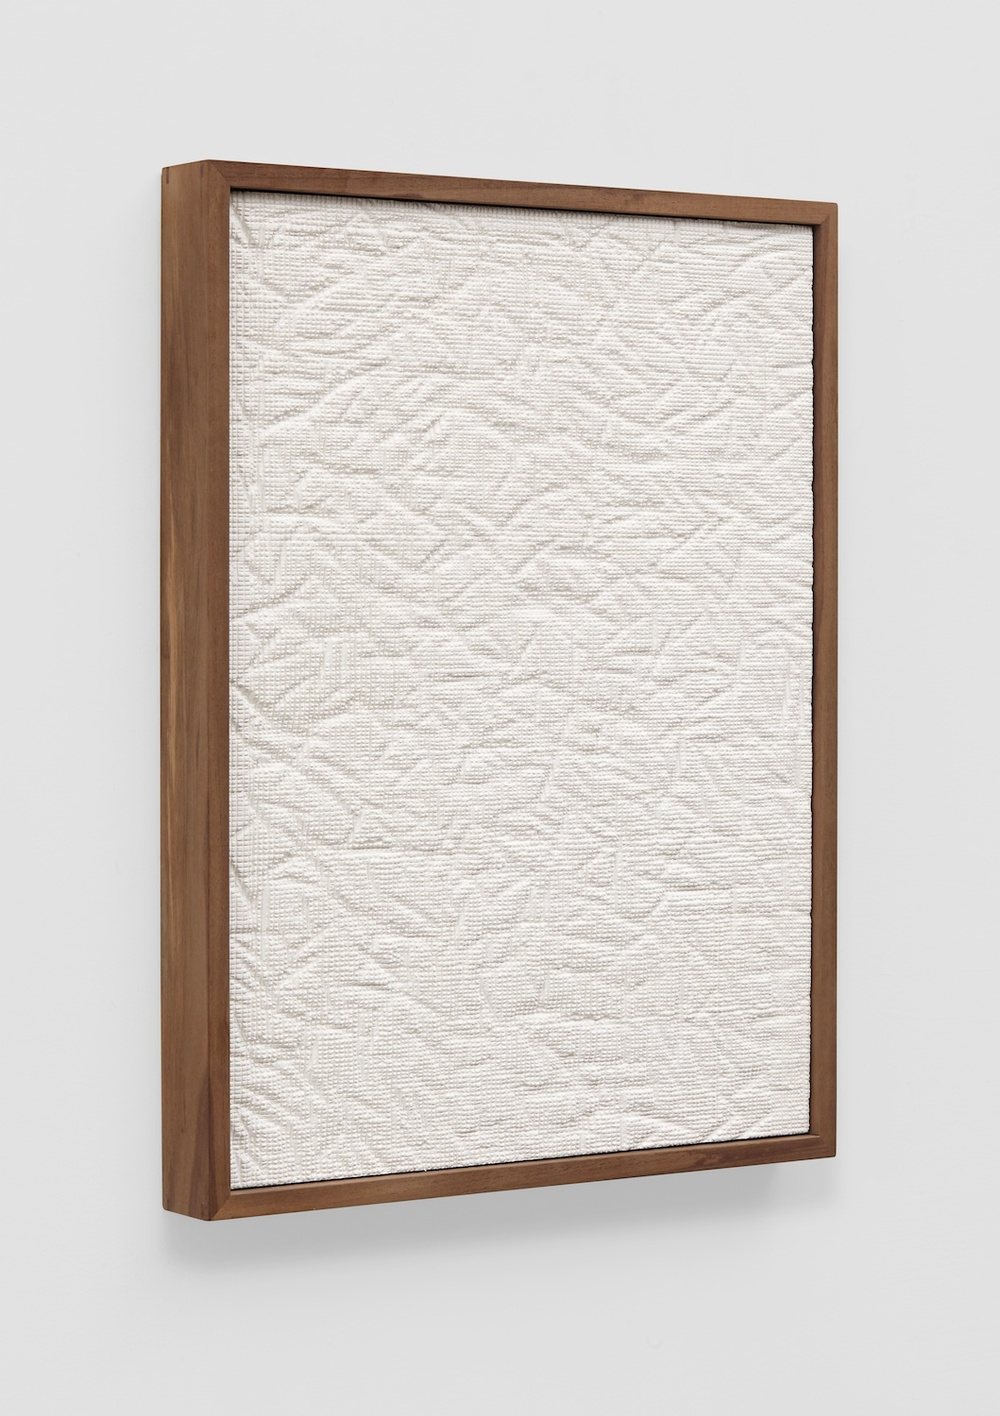 "Anthony Pearson Untitled (Etched Plaster) 2014 Pigmented hydrocal in walnut frame 24 1/4"" x 18 1/2"" x 2 1/4"" AP354"